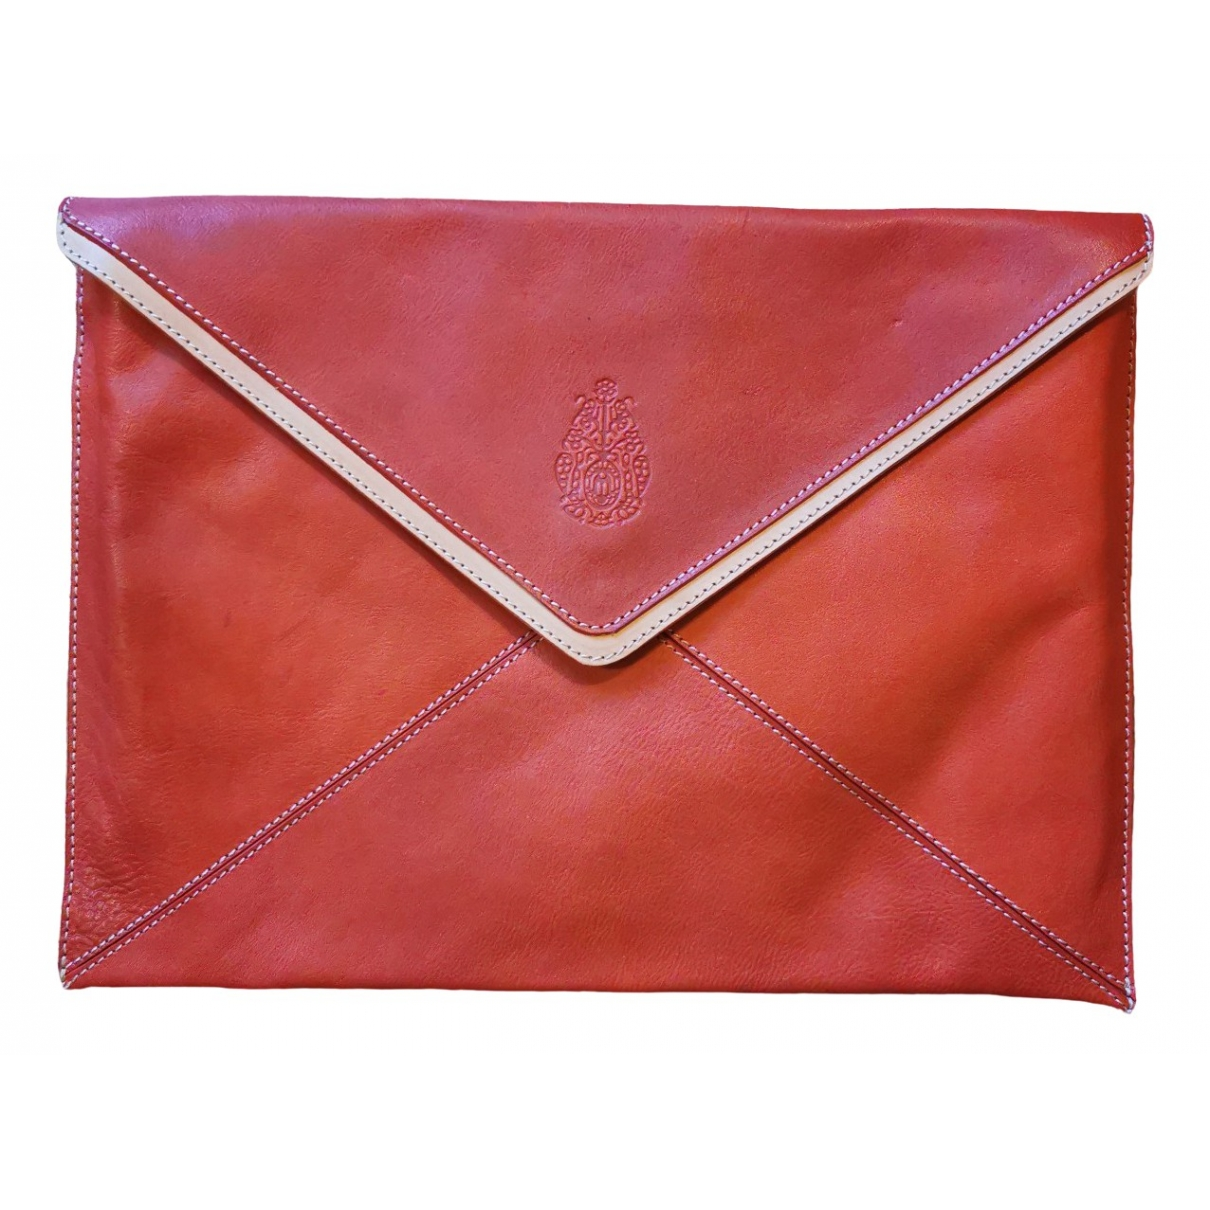 Dondup \N Clutch in  Rot Leder